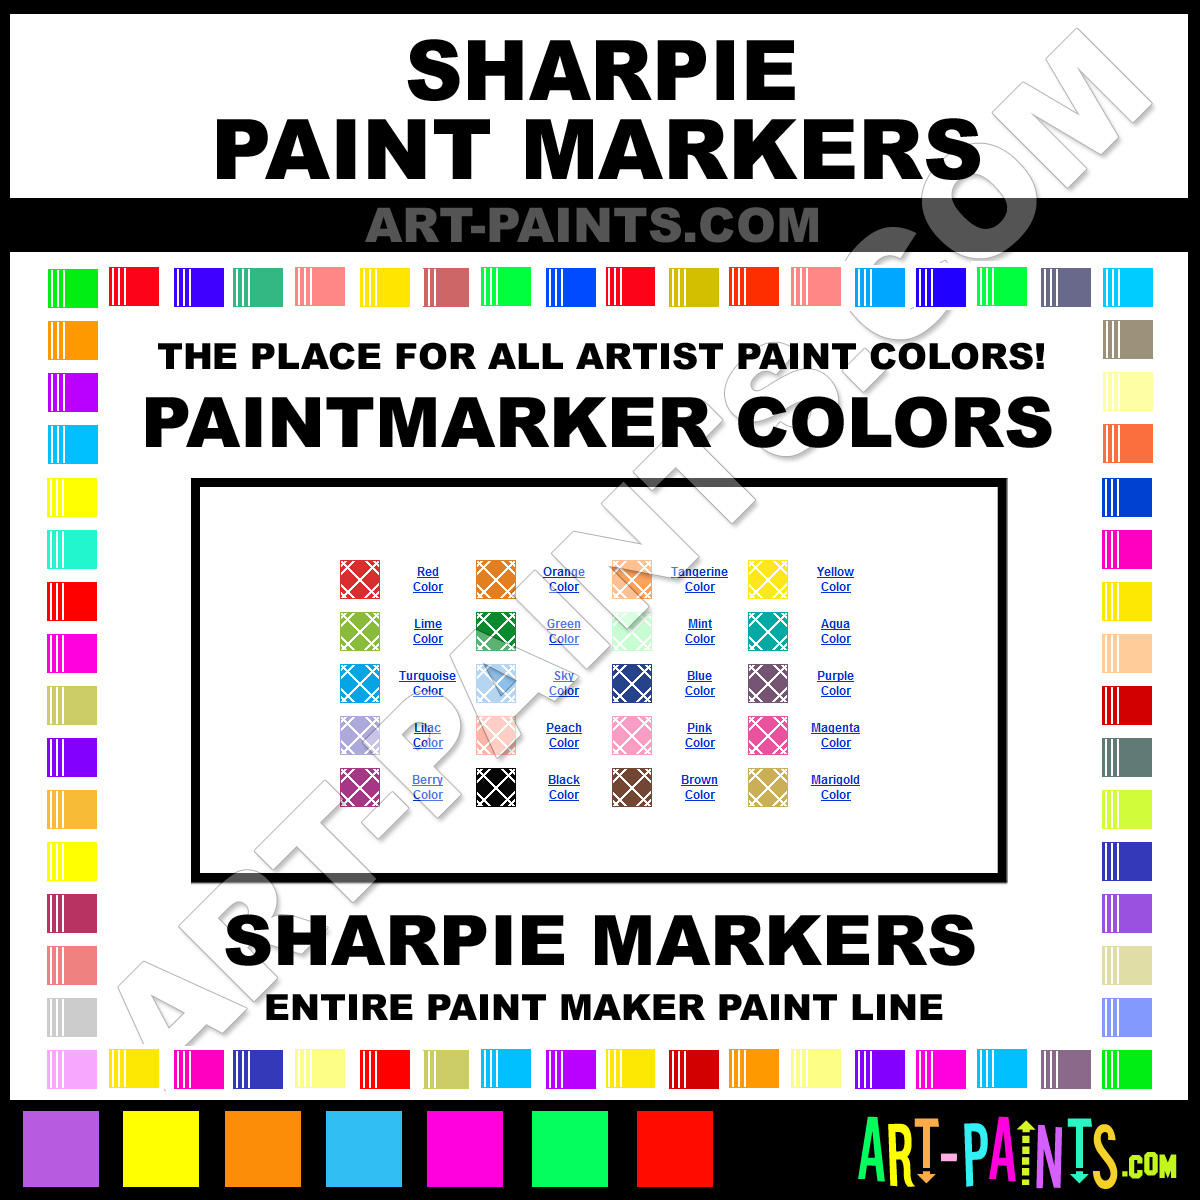 Sharpie paint marker paint brands and marking pens sharpie paint brands paintmarker paints Oil based exterior paint brands